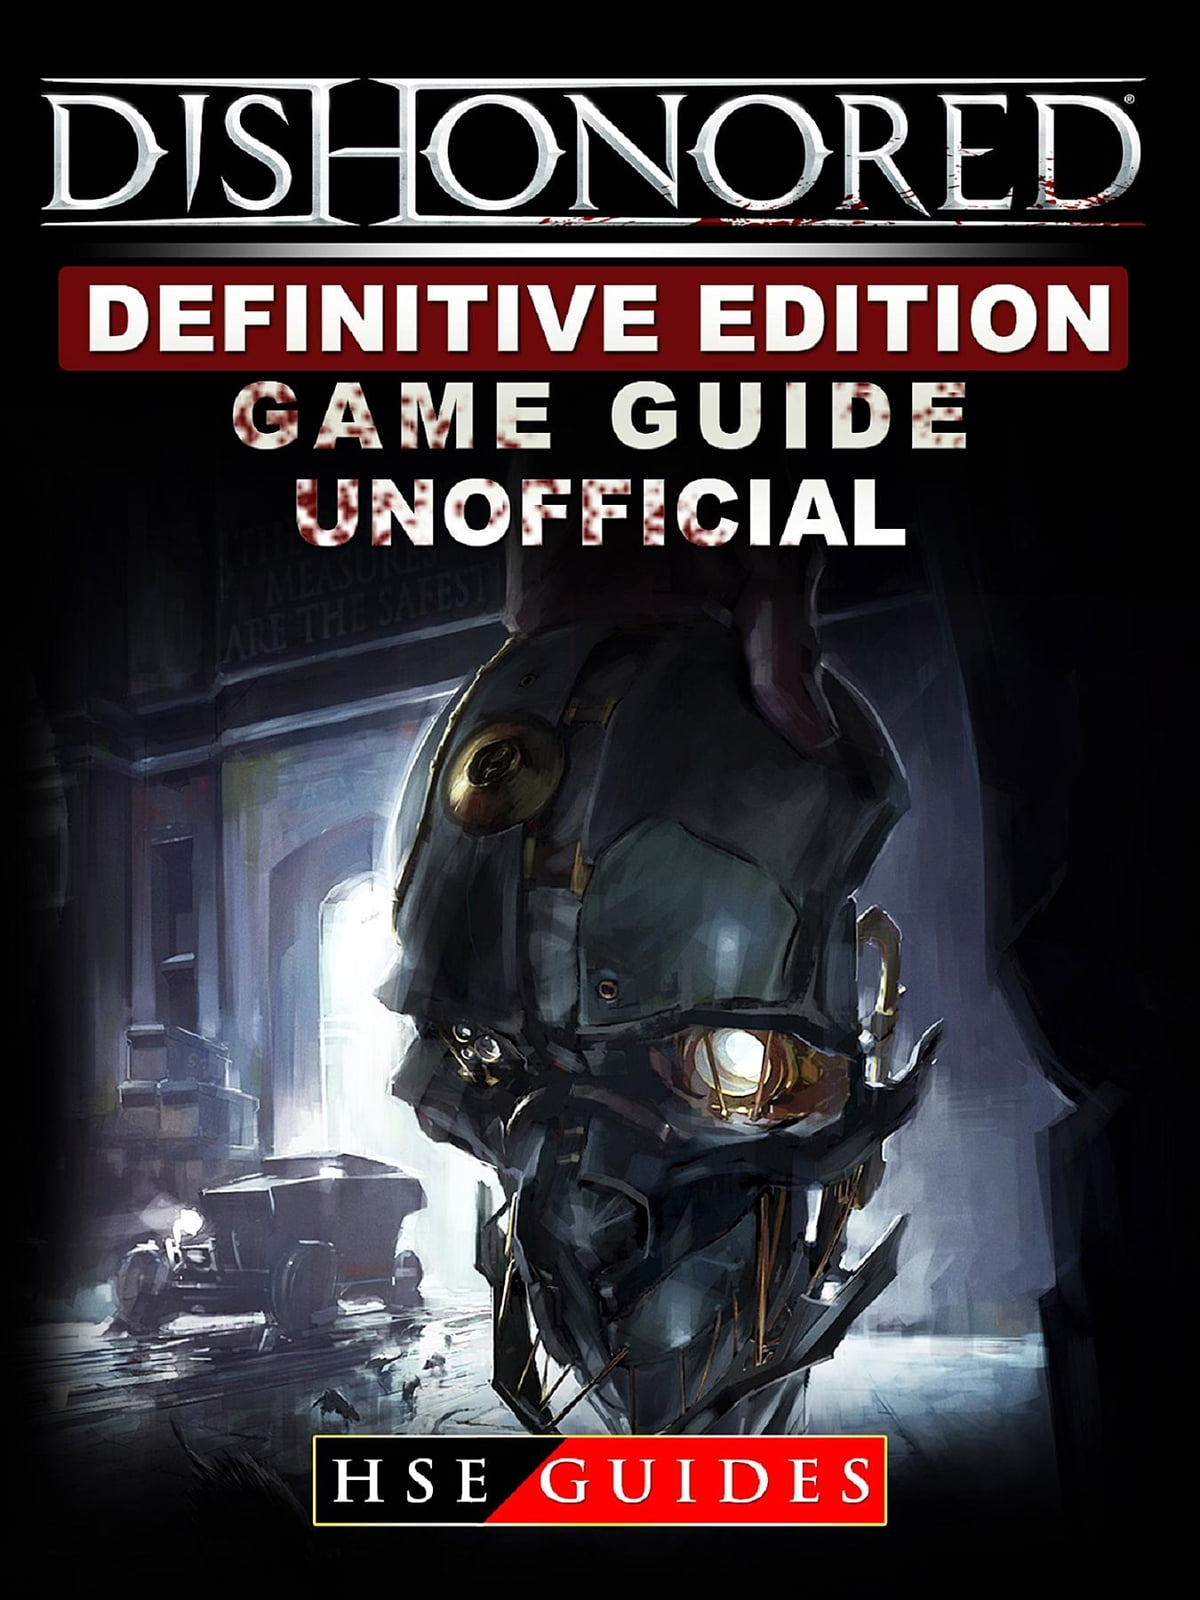 Dishonored Definitive Edition Game Guide Unofficial eBook by HSE Guides -  9781387524112 | Rakuten Kobo